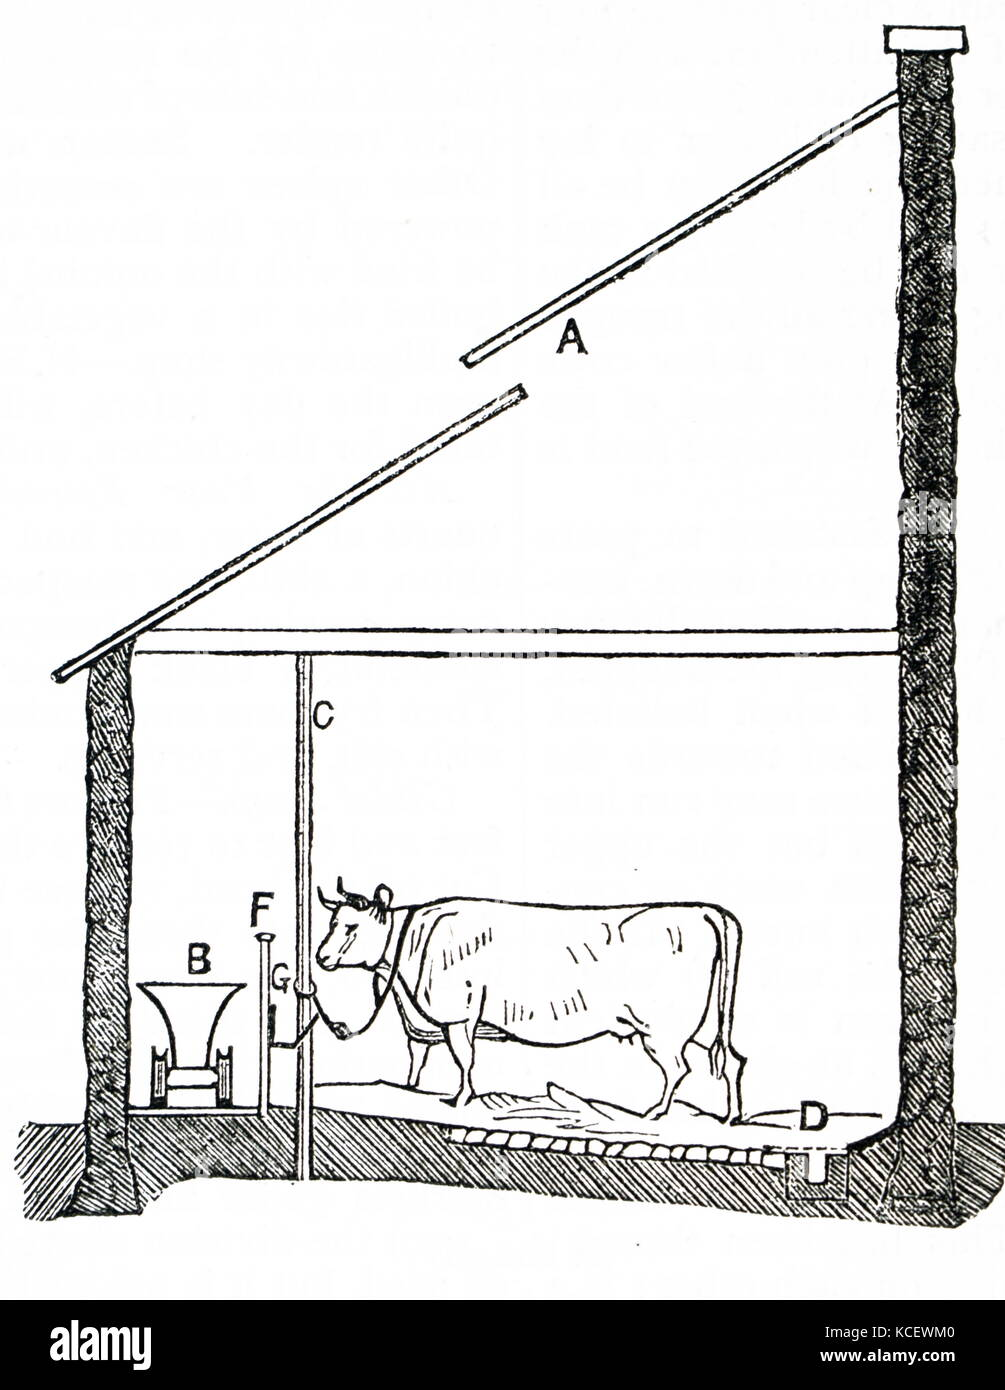 hight resolution of engraving depicting a diagram of a cow house in england a cow house is a